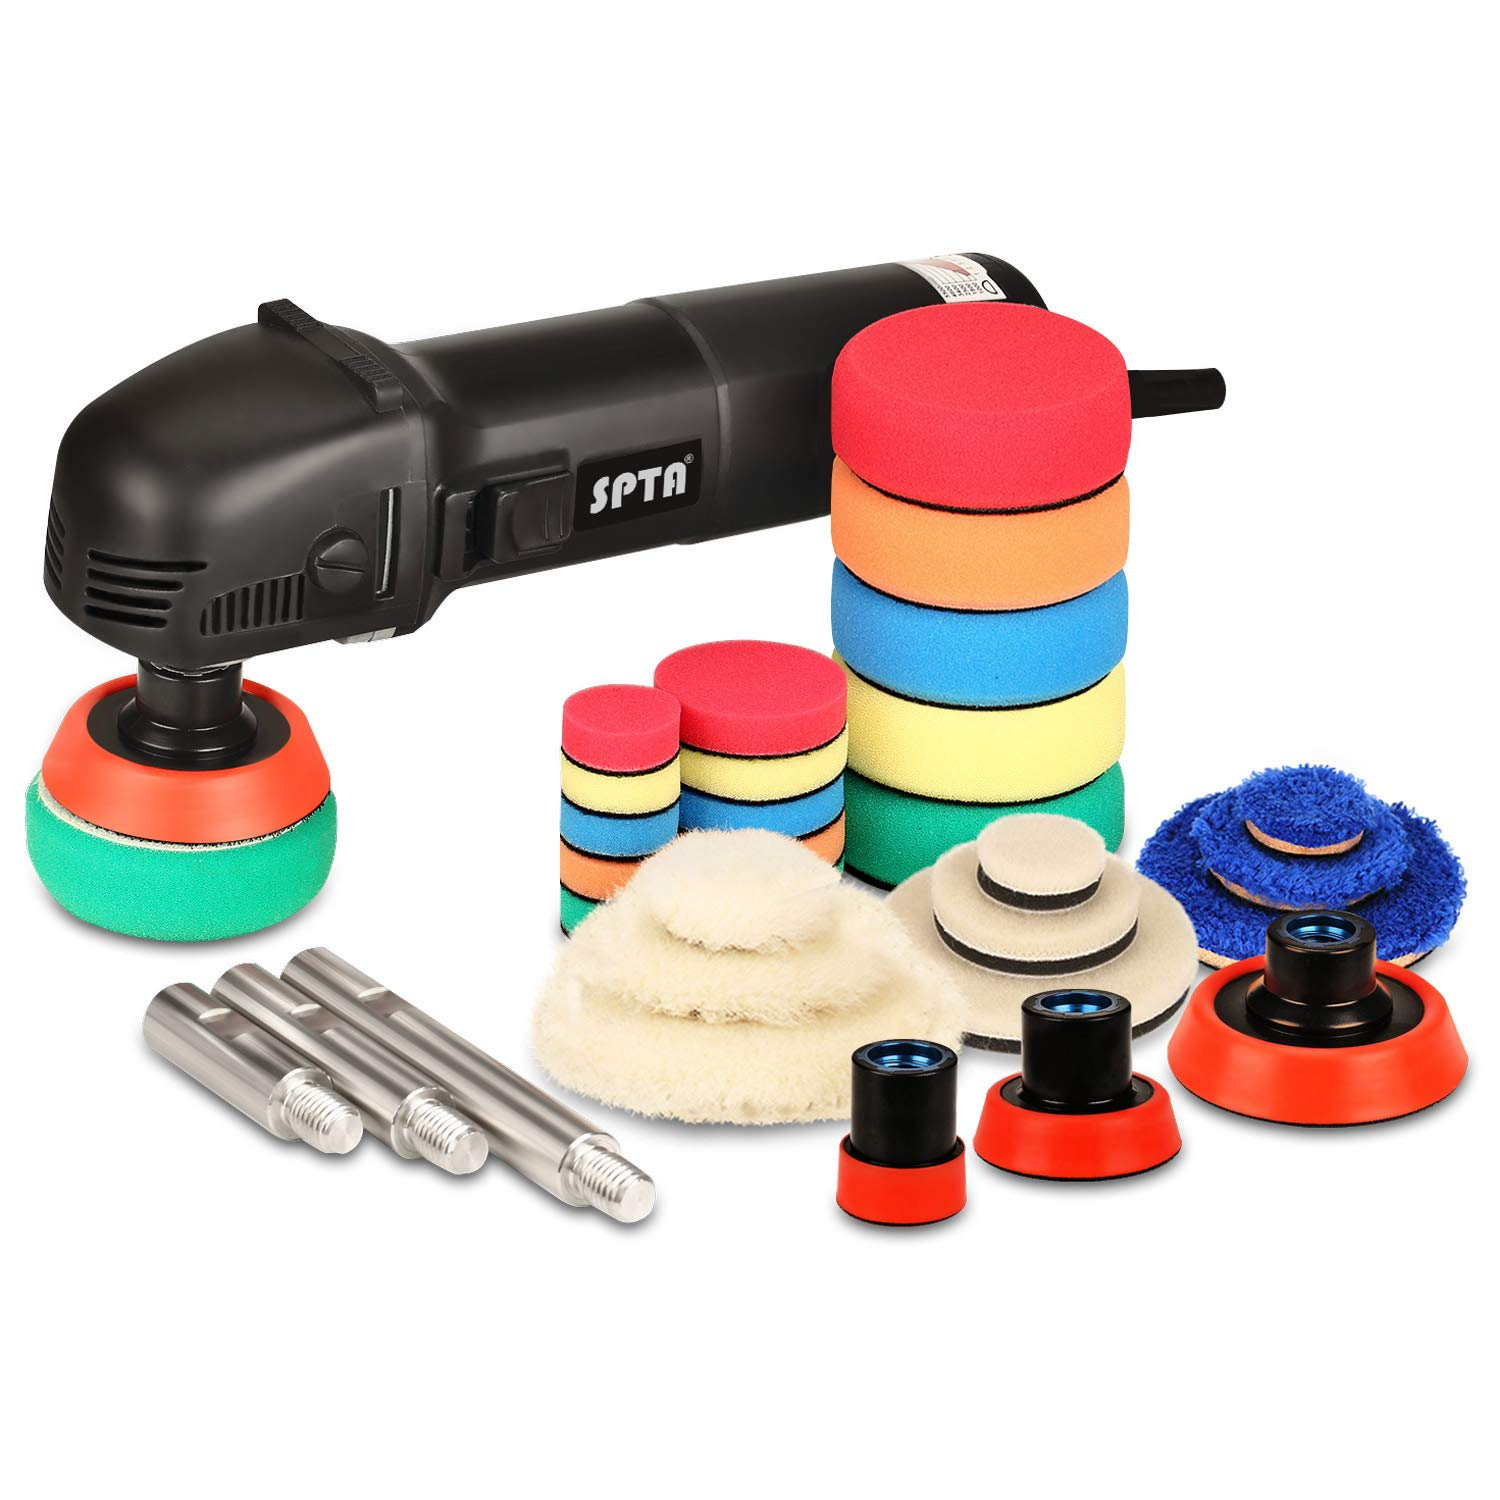 SPTA Mini Polishing Machine Rotary Polisher RO Polisher Auto Detailing Superpolish with 27Pcs Detail Polishing Pad Mix Size Kit Buffing Pad and 75mm,100mm,140mm M14 Thread Extension Shaft by SPTA